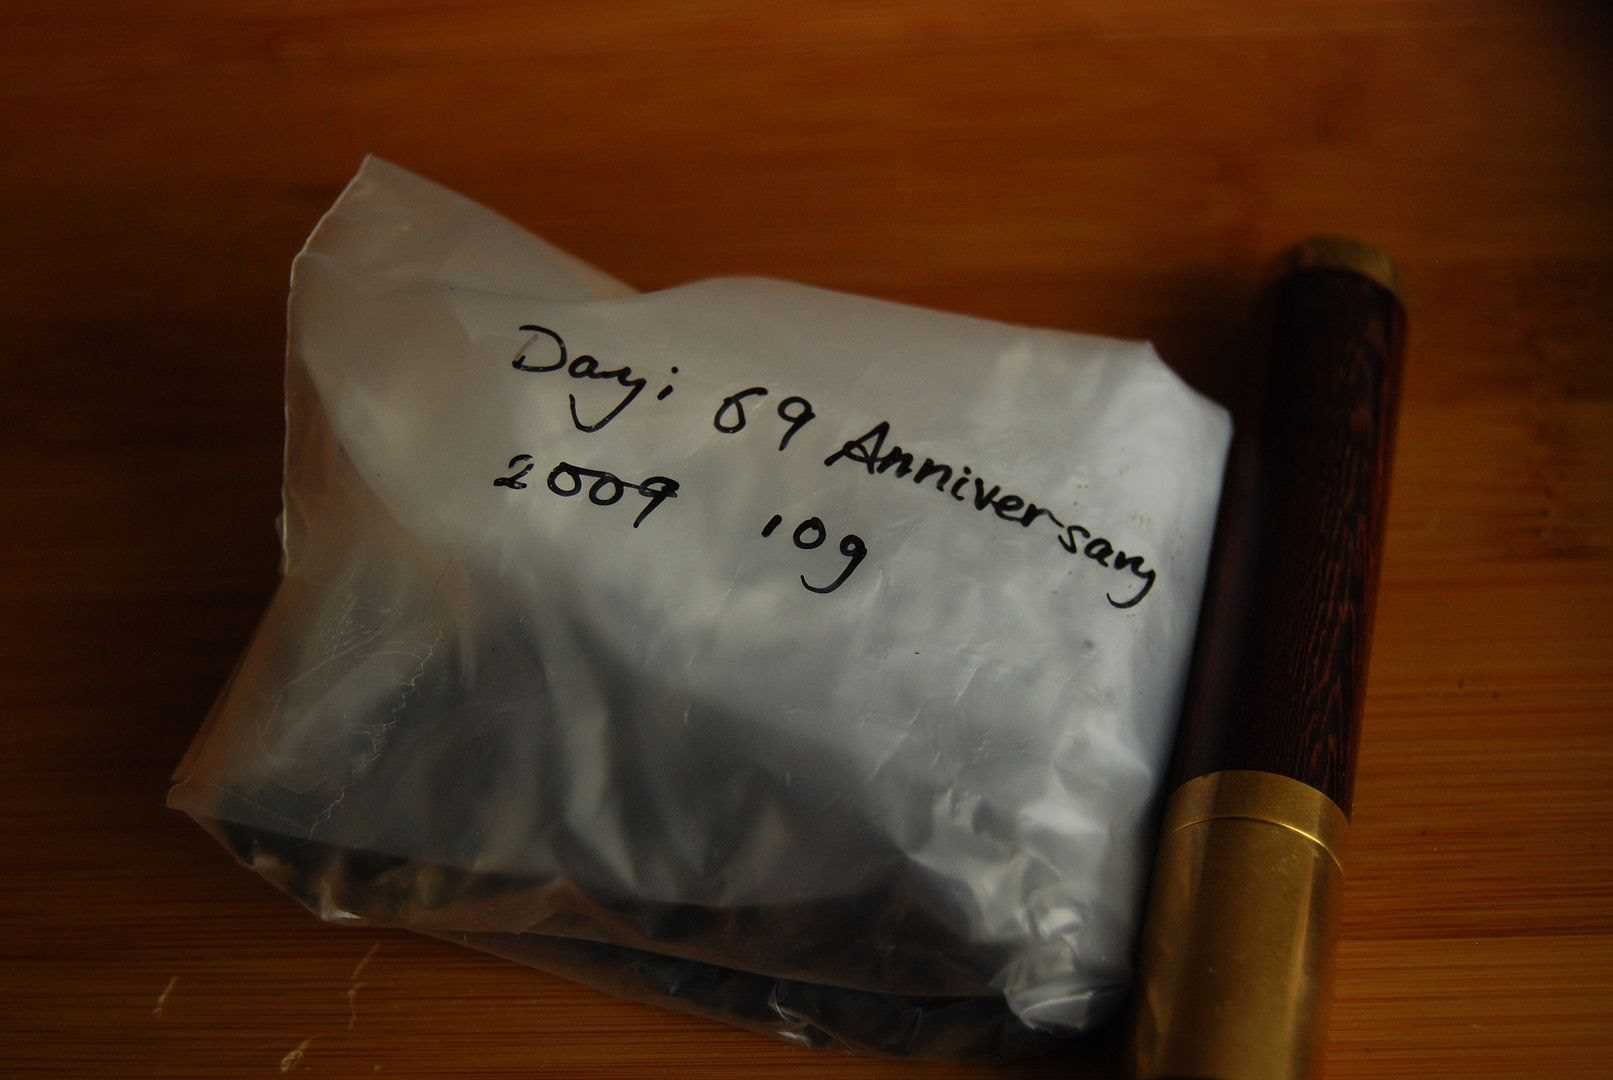 2009 Dayi 69th Anniversary